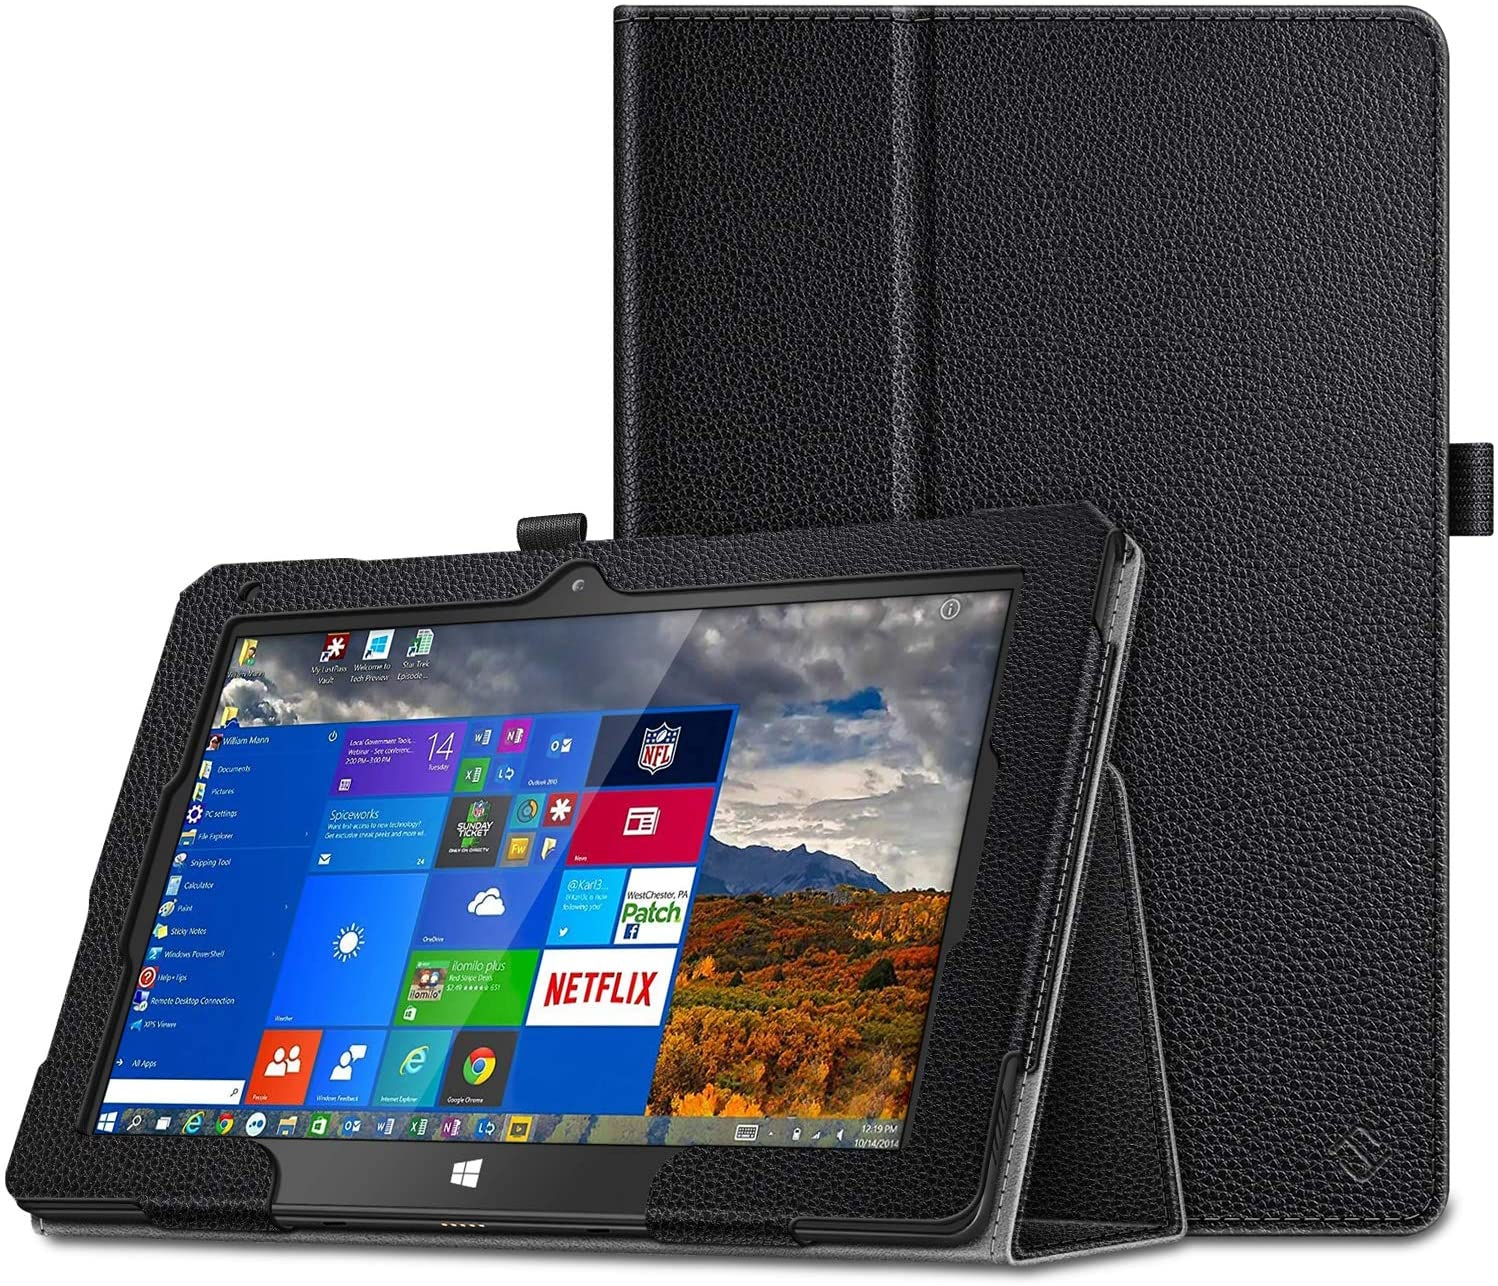 Fintie Case for Fusion5 Windows 10 FWIN232 Plus S1 / FWIN232 PRO S1 Tablet [Not for FWIN232 S2] - Folio Protective Stand Cover with Auto Wake/Sleep (Black)